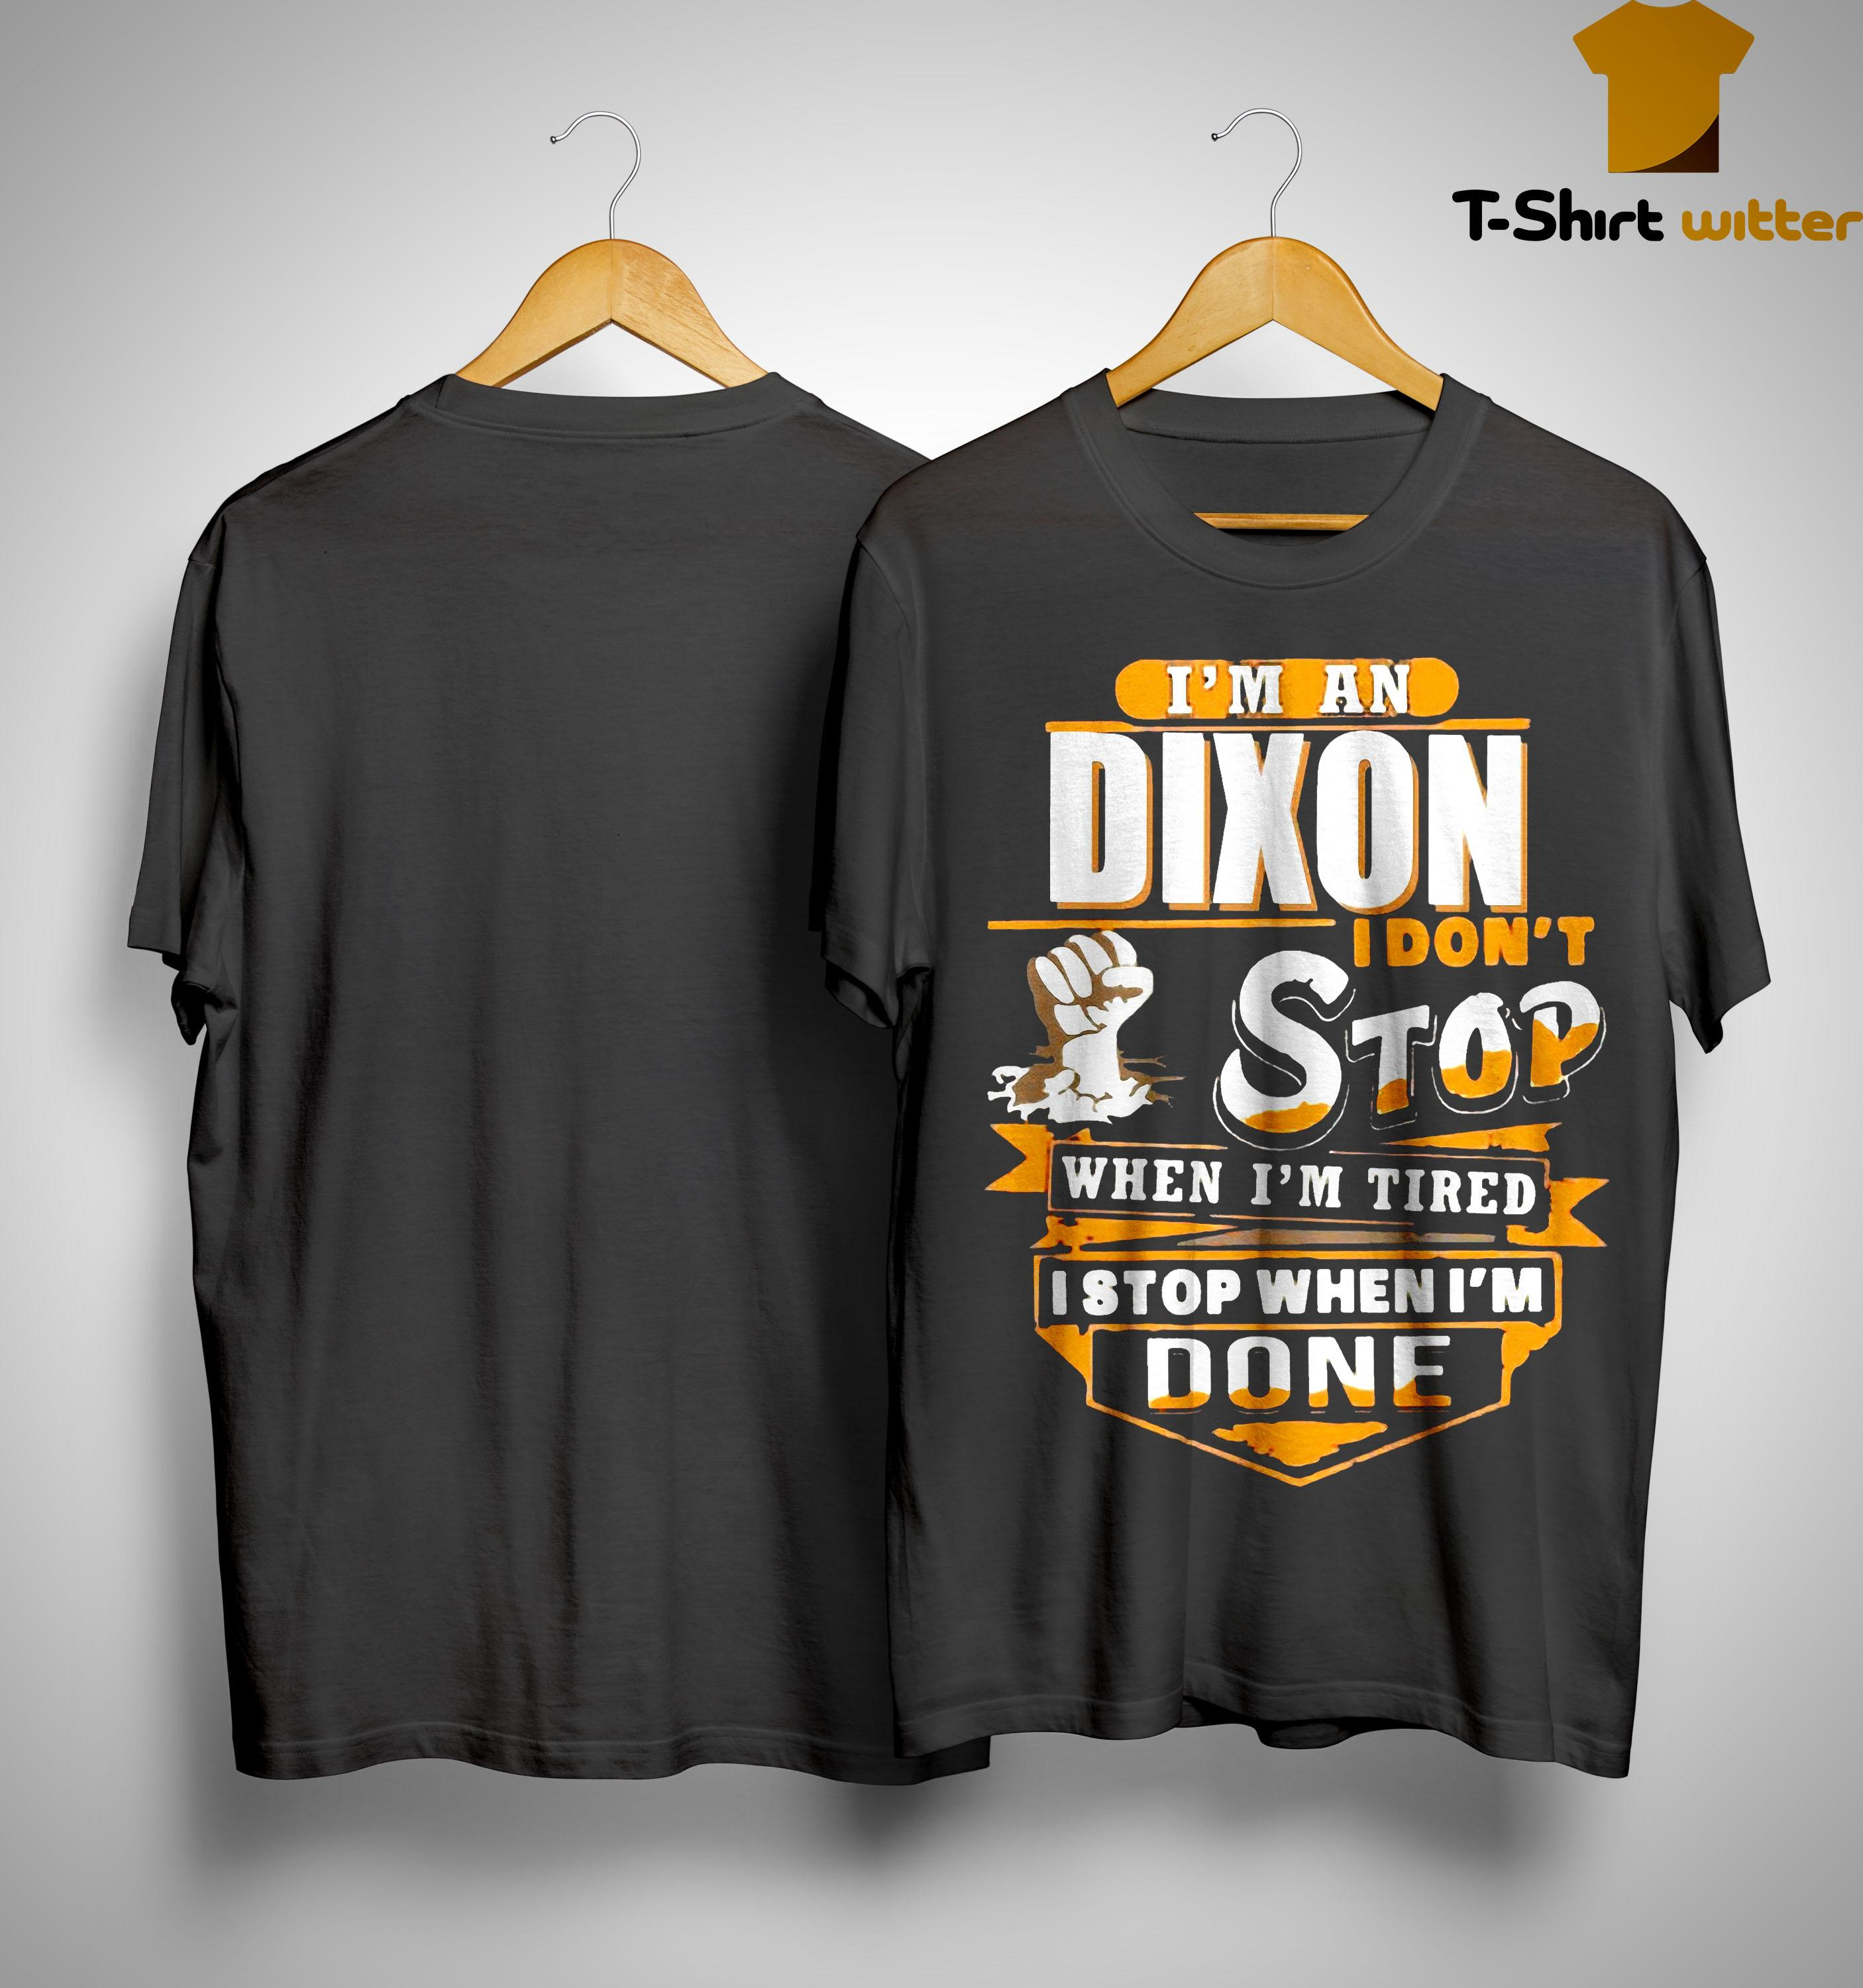 I'm A Dixon I Don't Stop When I'm Tired I Stop When I'm Done Shirt